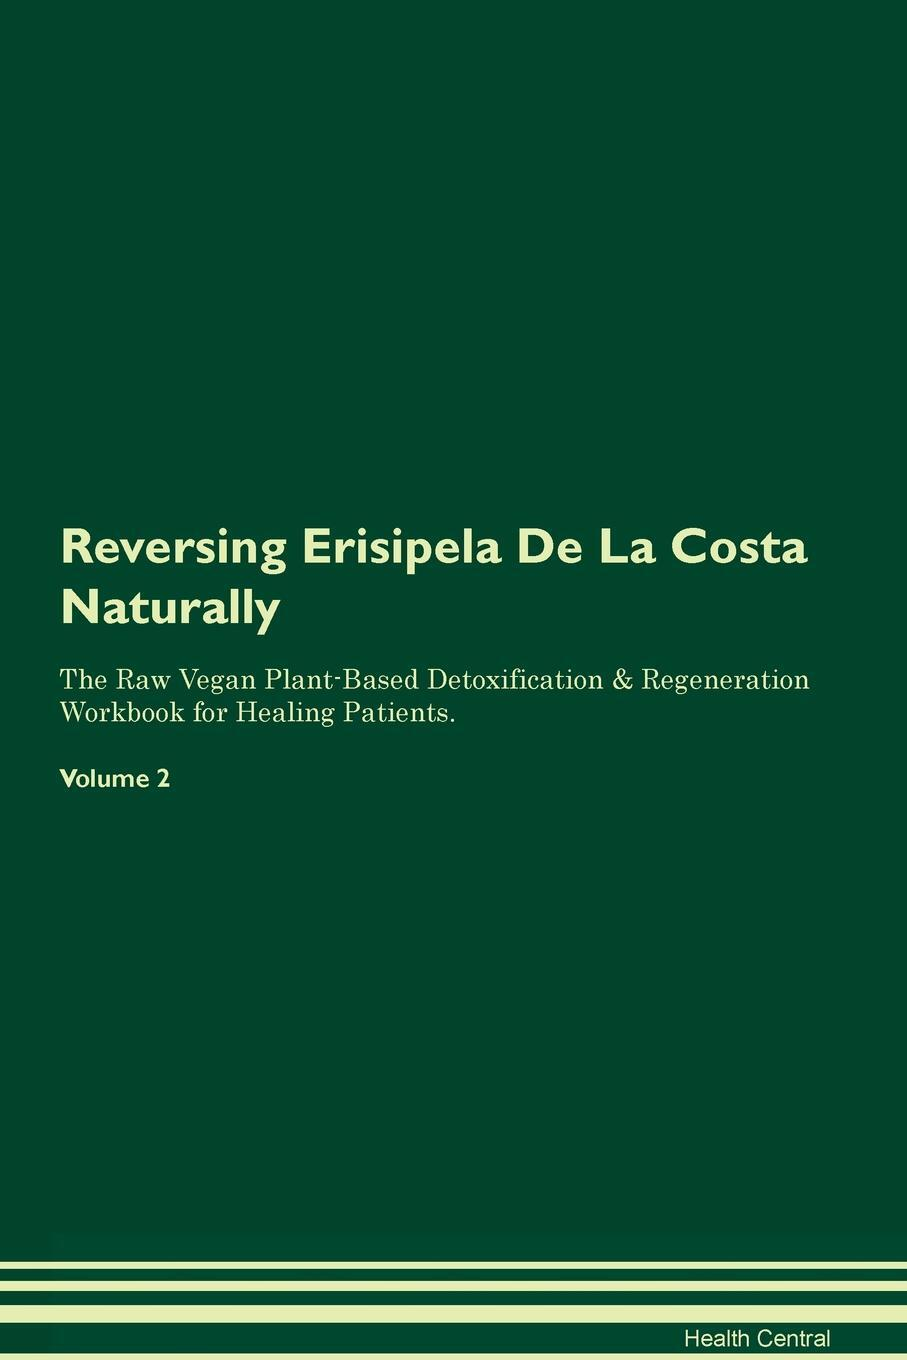 Reversing Erisipela De La Costa Naturally The Raw Vegan Plant-Based Detoxification & Regeneration Workbook for Healing Patients. Volume 2